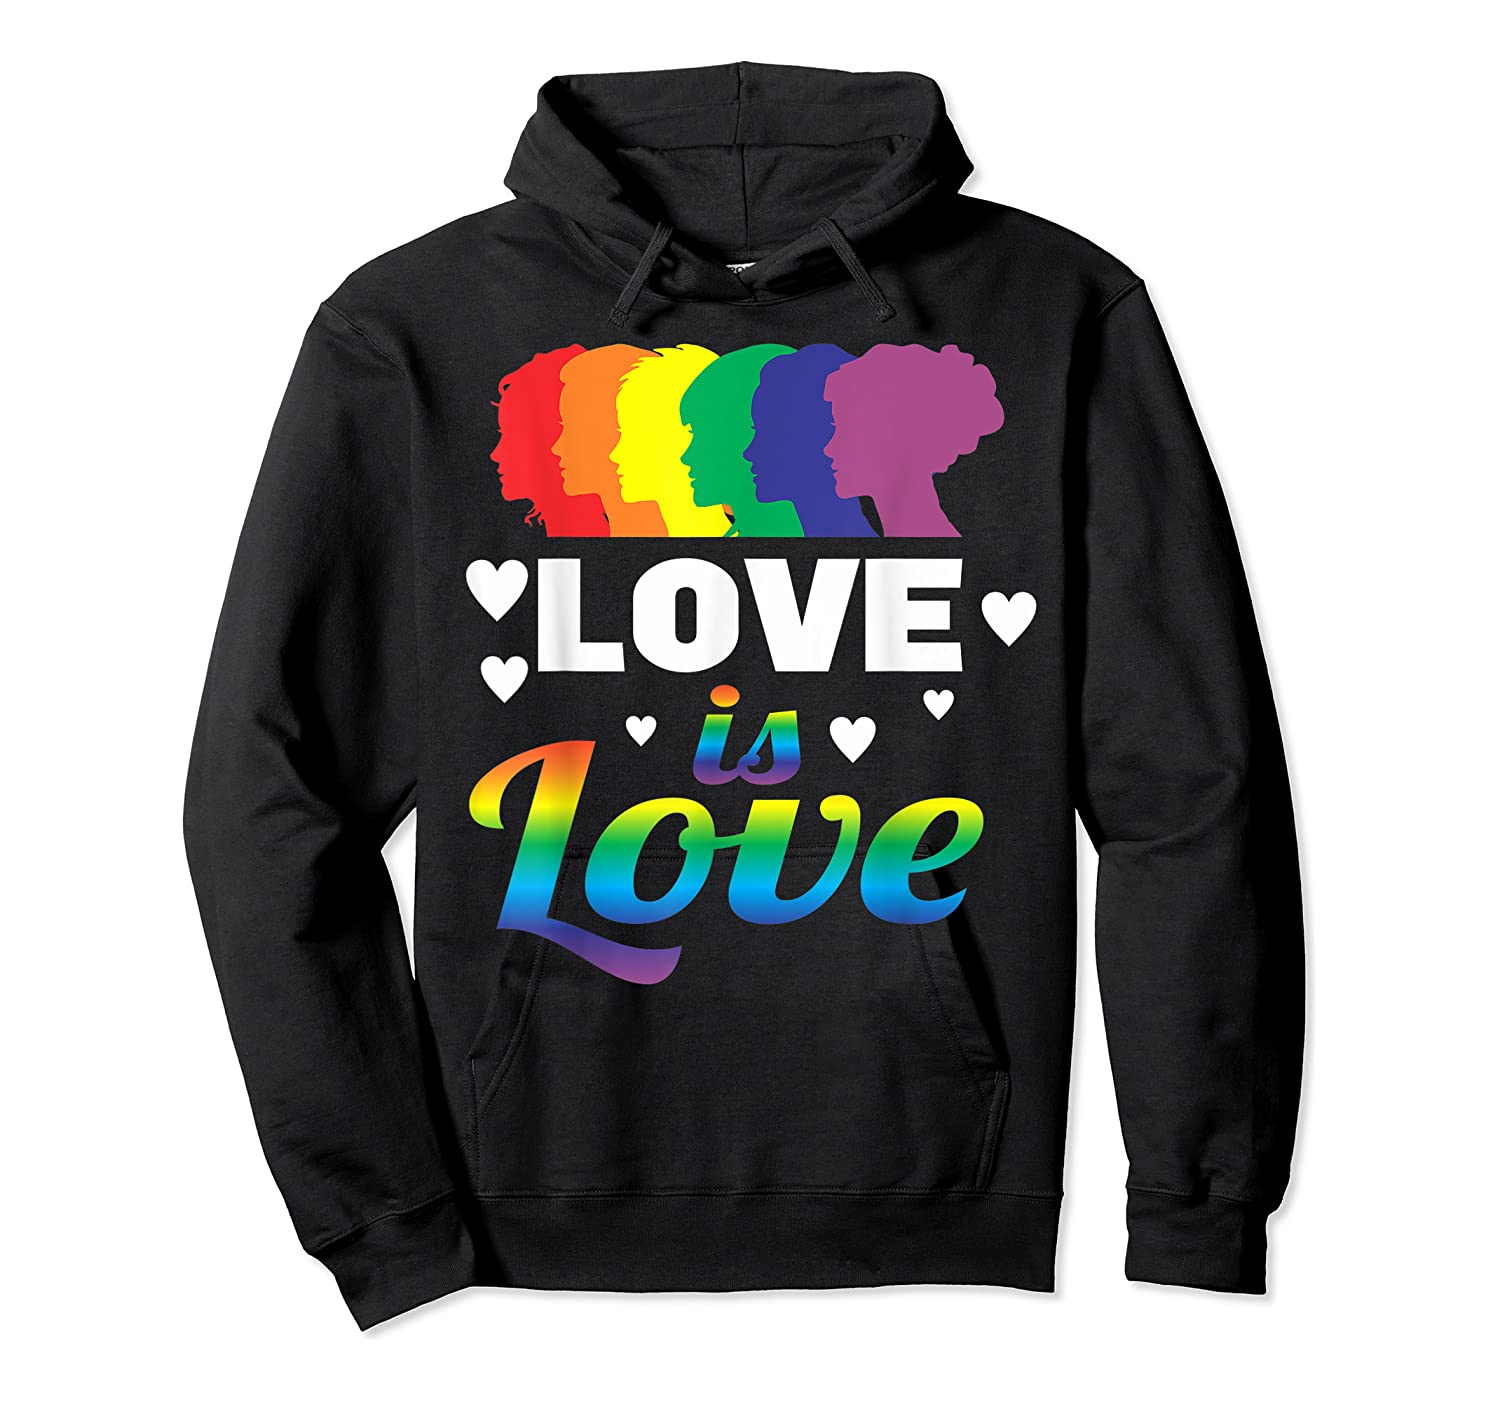 Colorful Pride Love Lgbt Suppor Gifts Love Is Love Shirts Unisex Pullover Hoodie